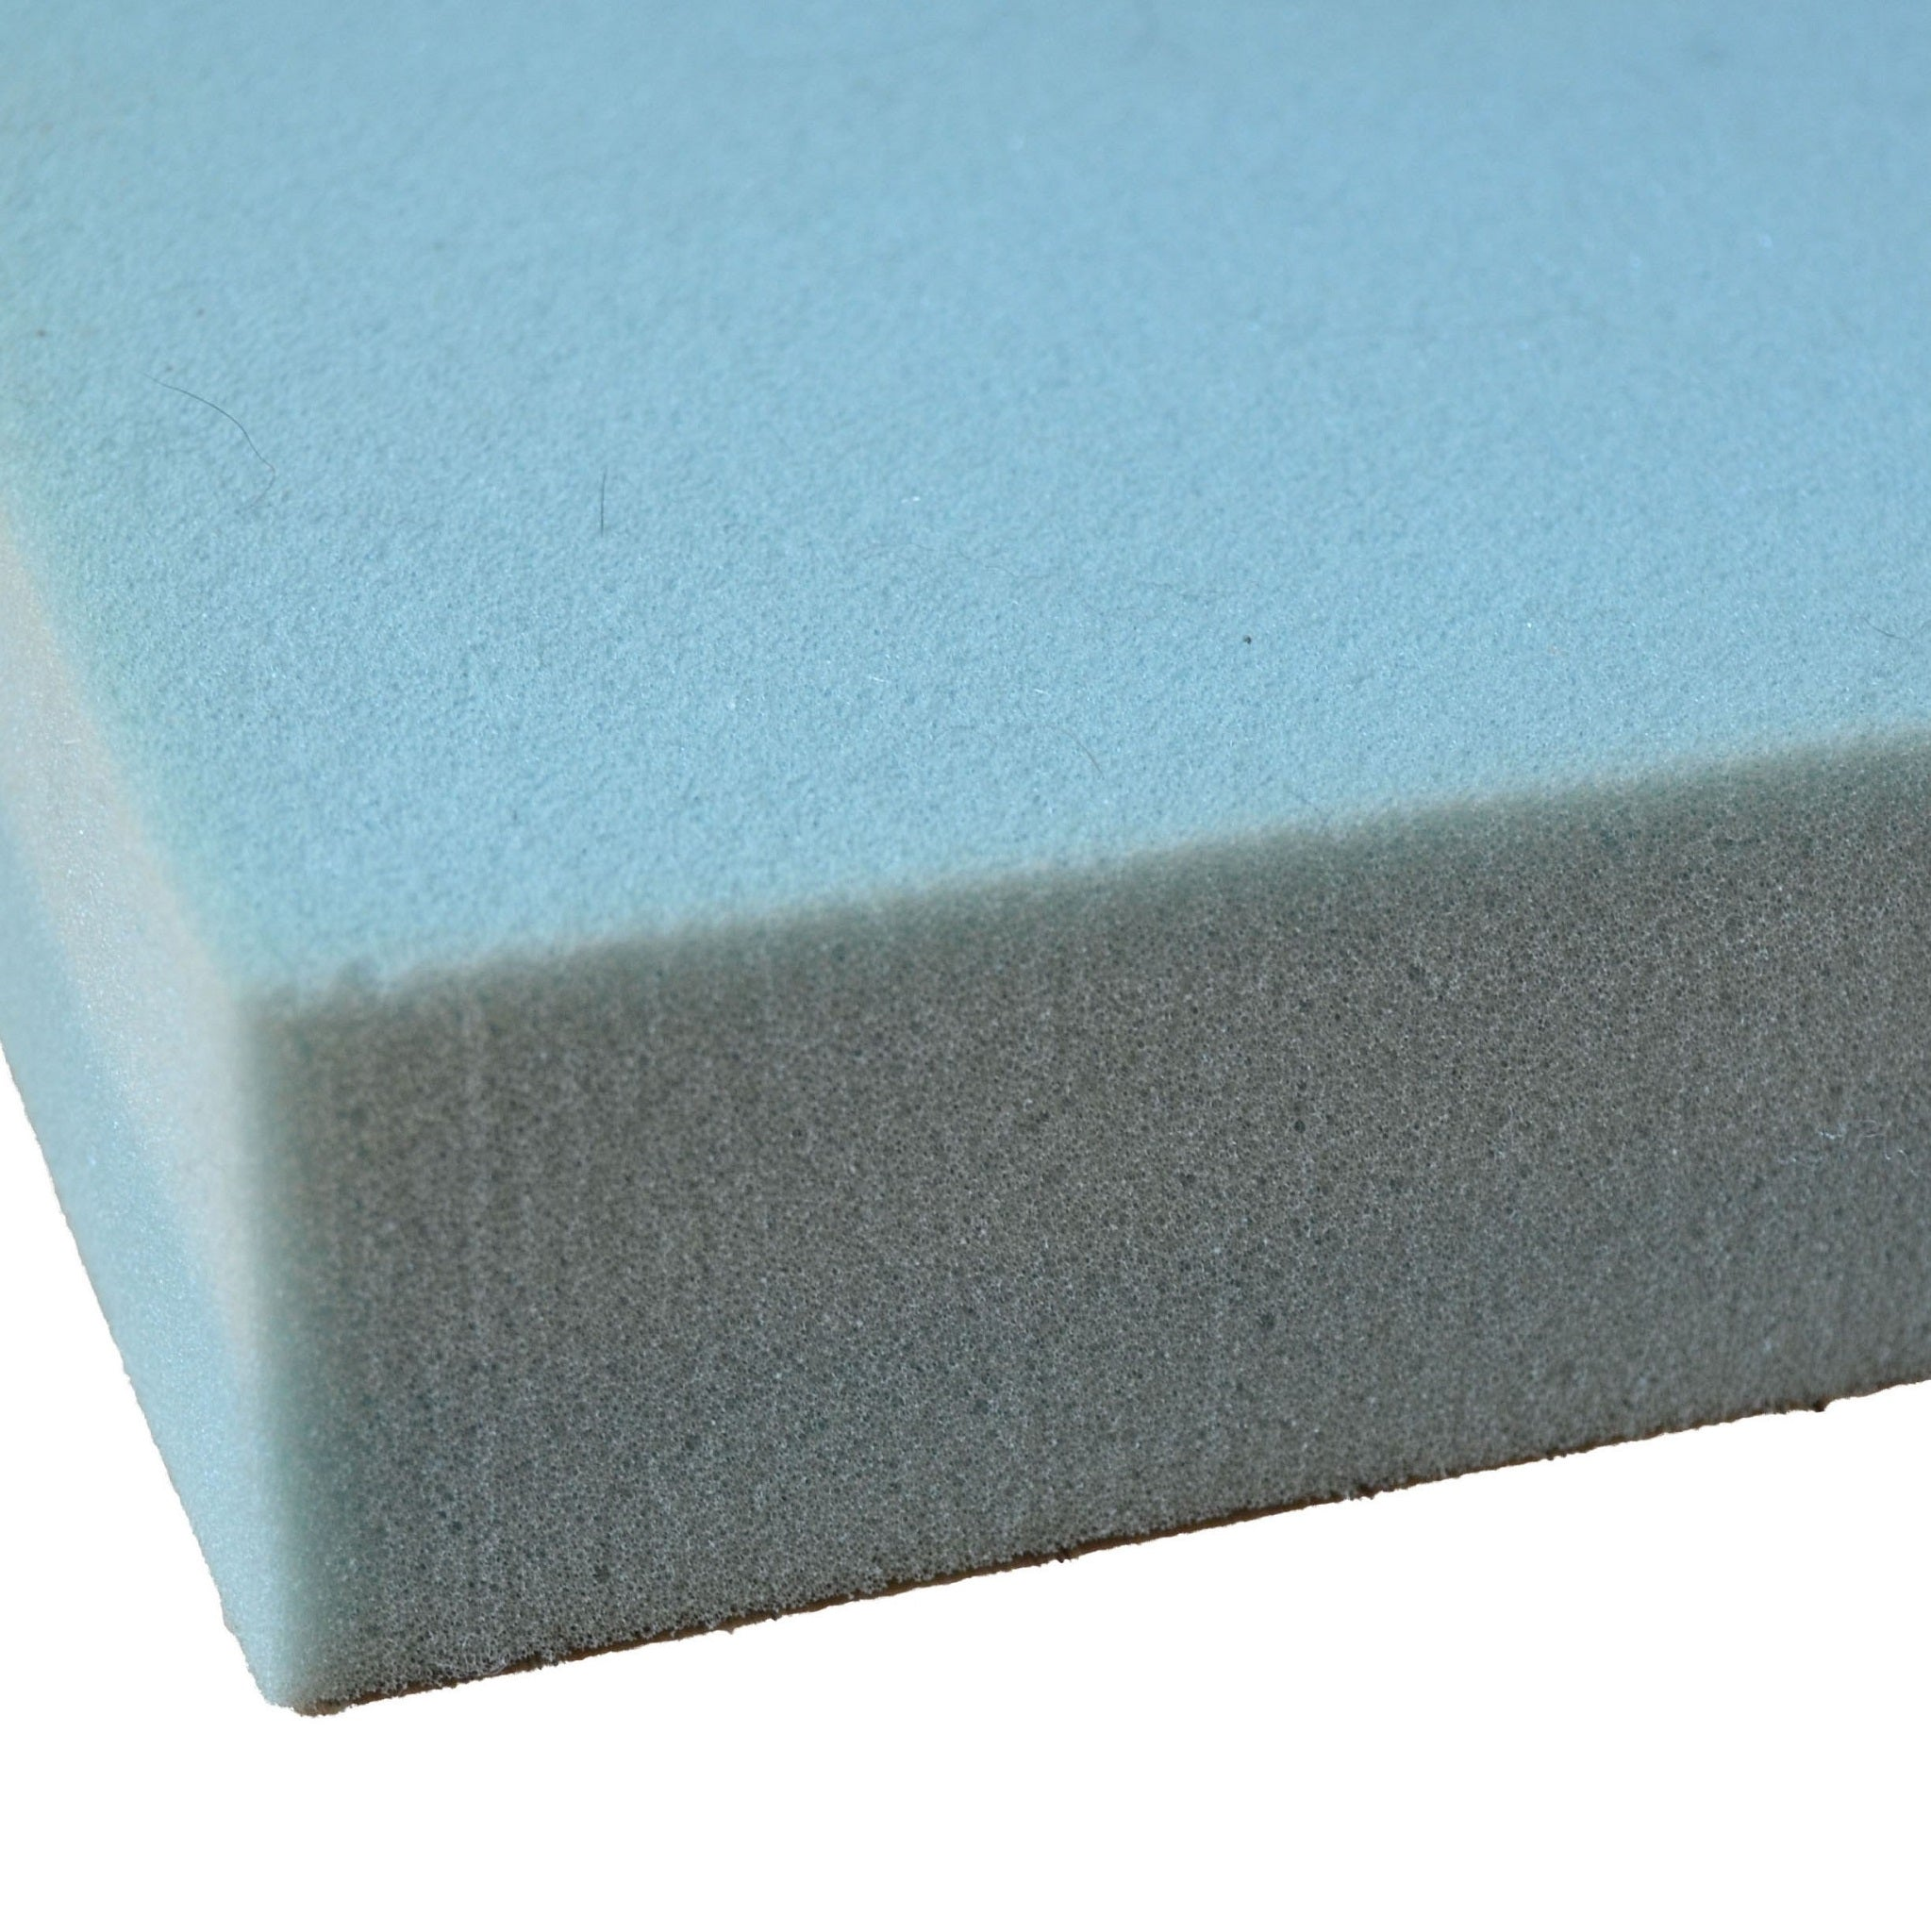 Foam used for physiotherapy floor mats and dog kennel mats